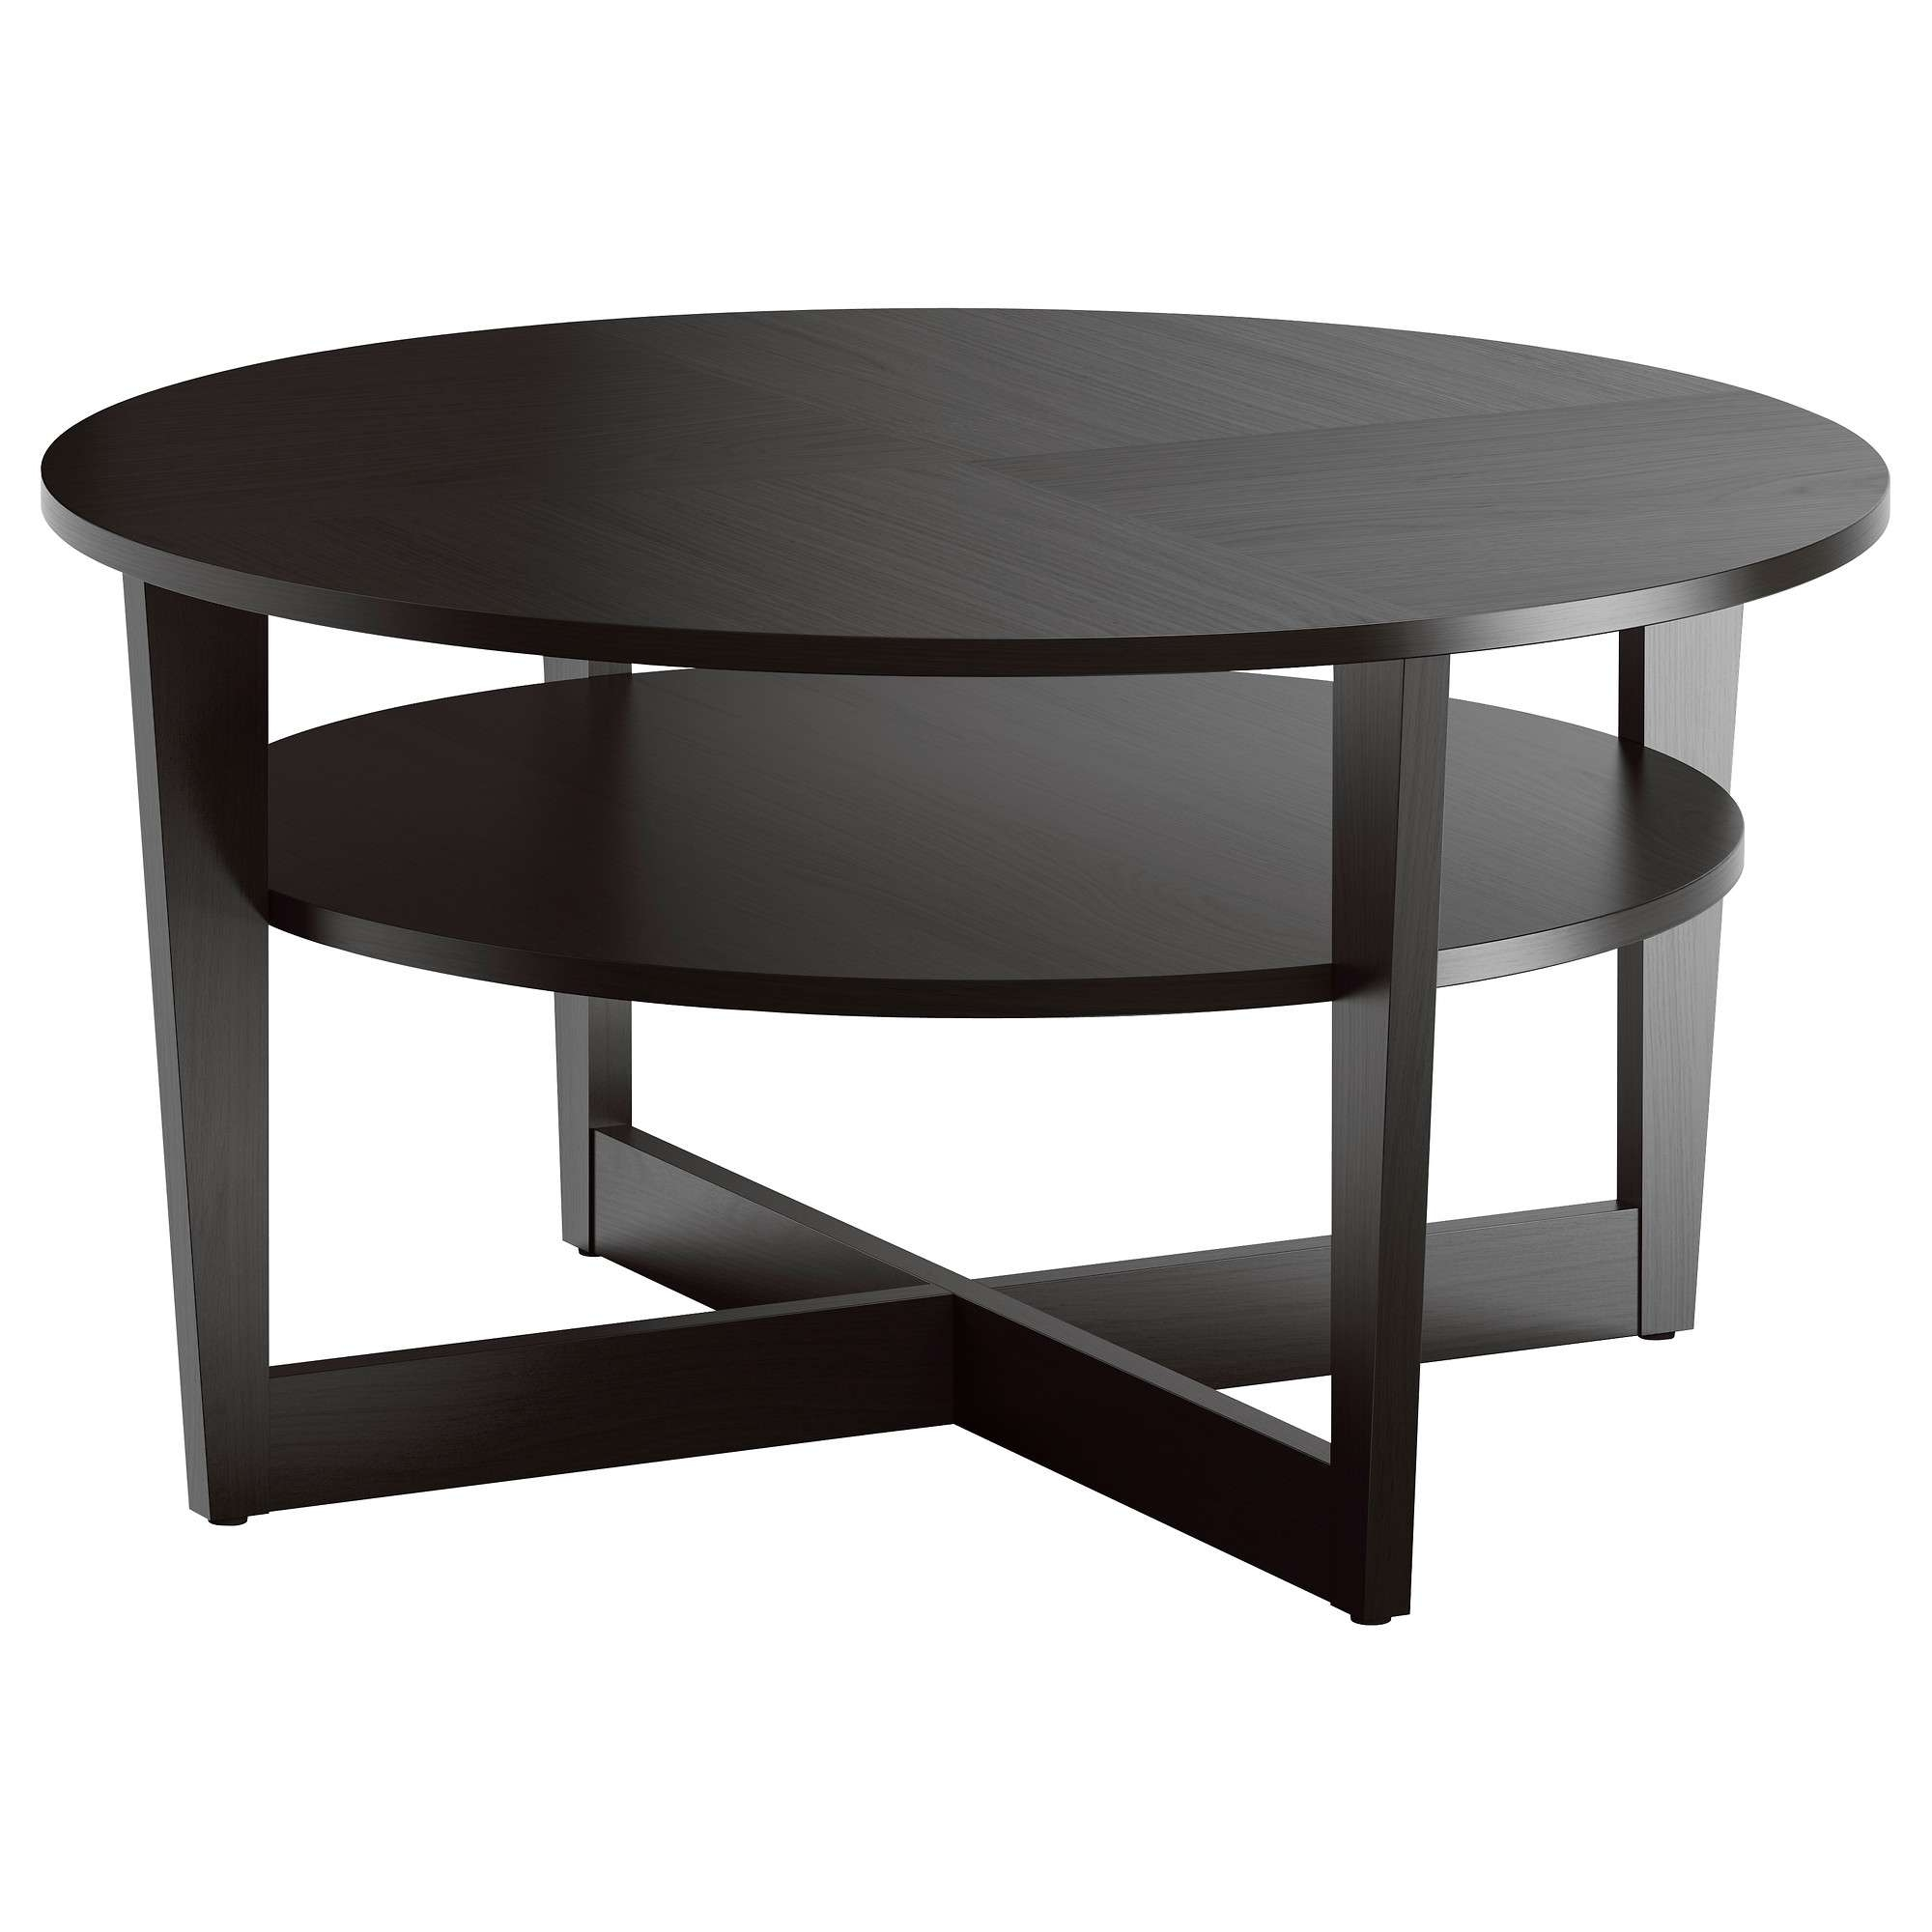 Round Coffee Table Ikea In Trends — Home Design Ideas Intended For Favorite Black Circle Coffee Tables (View 15 of 20)